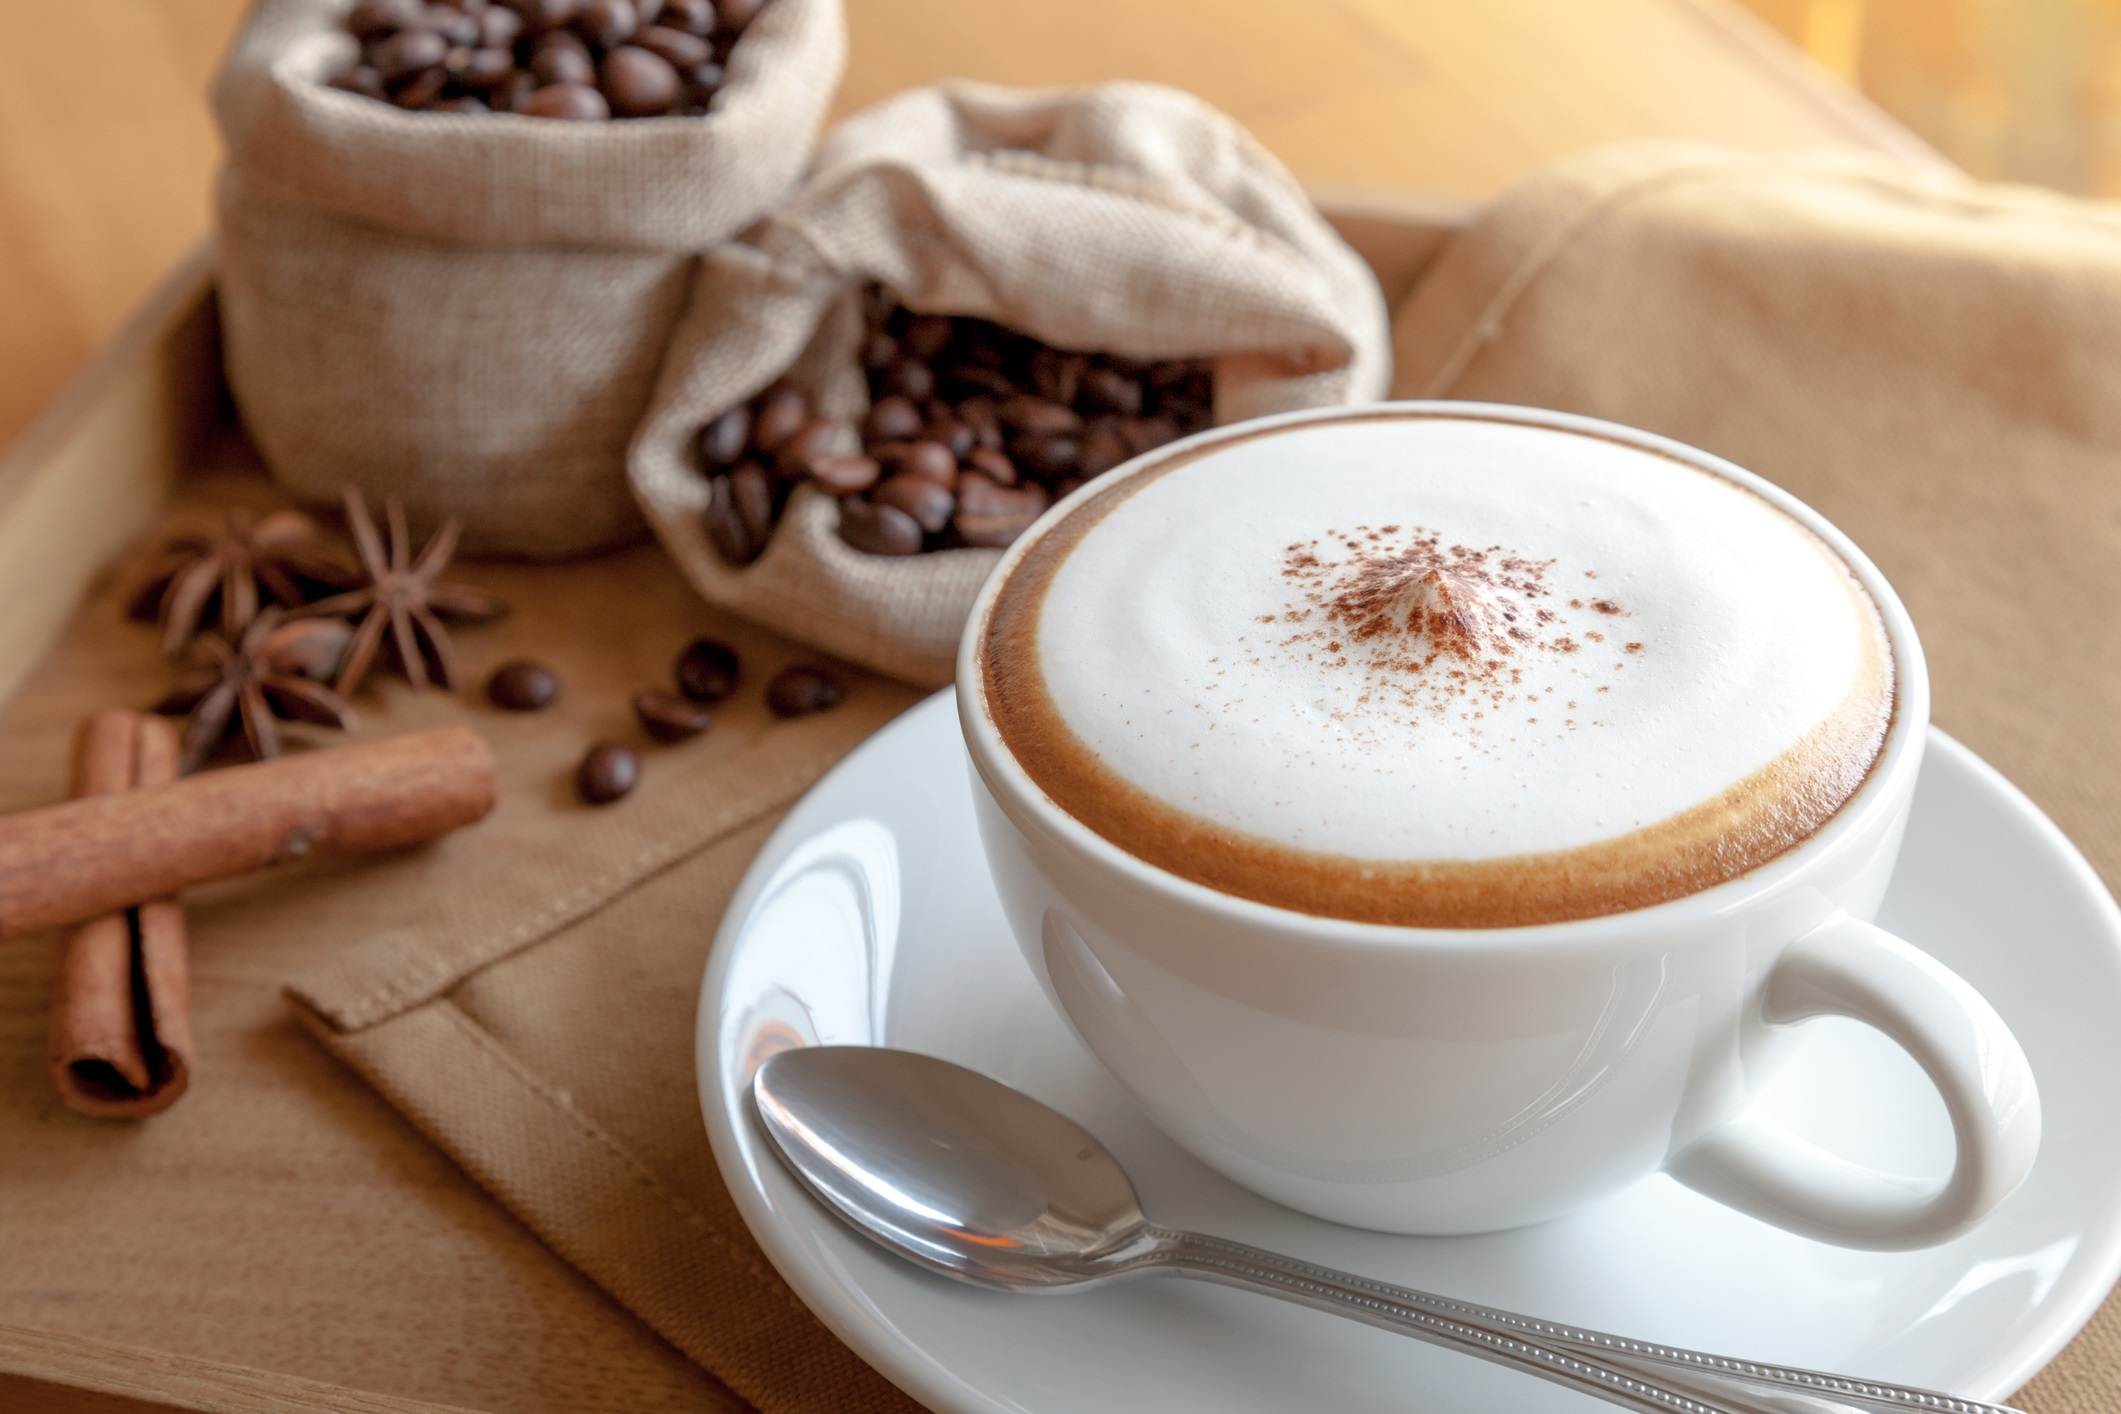 A cup of cappuccino with coffee beans as a side arrangement